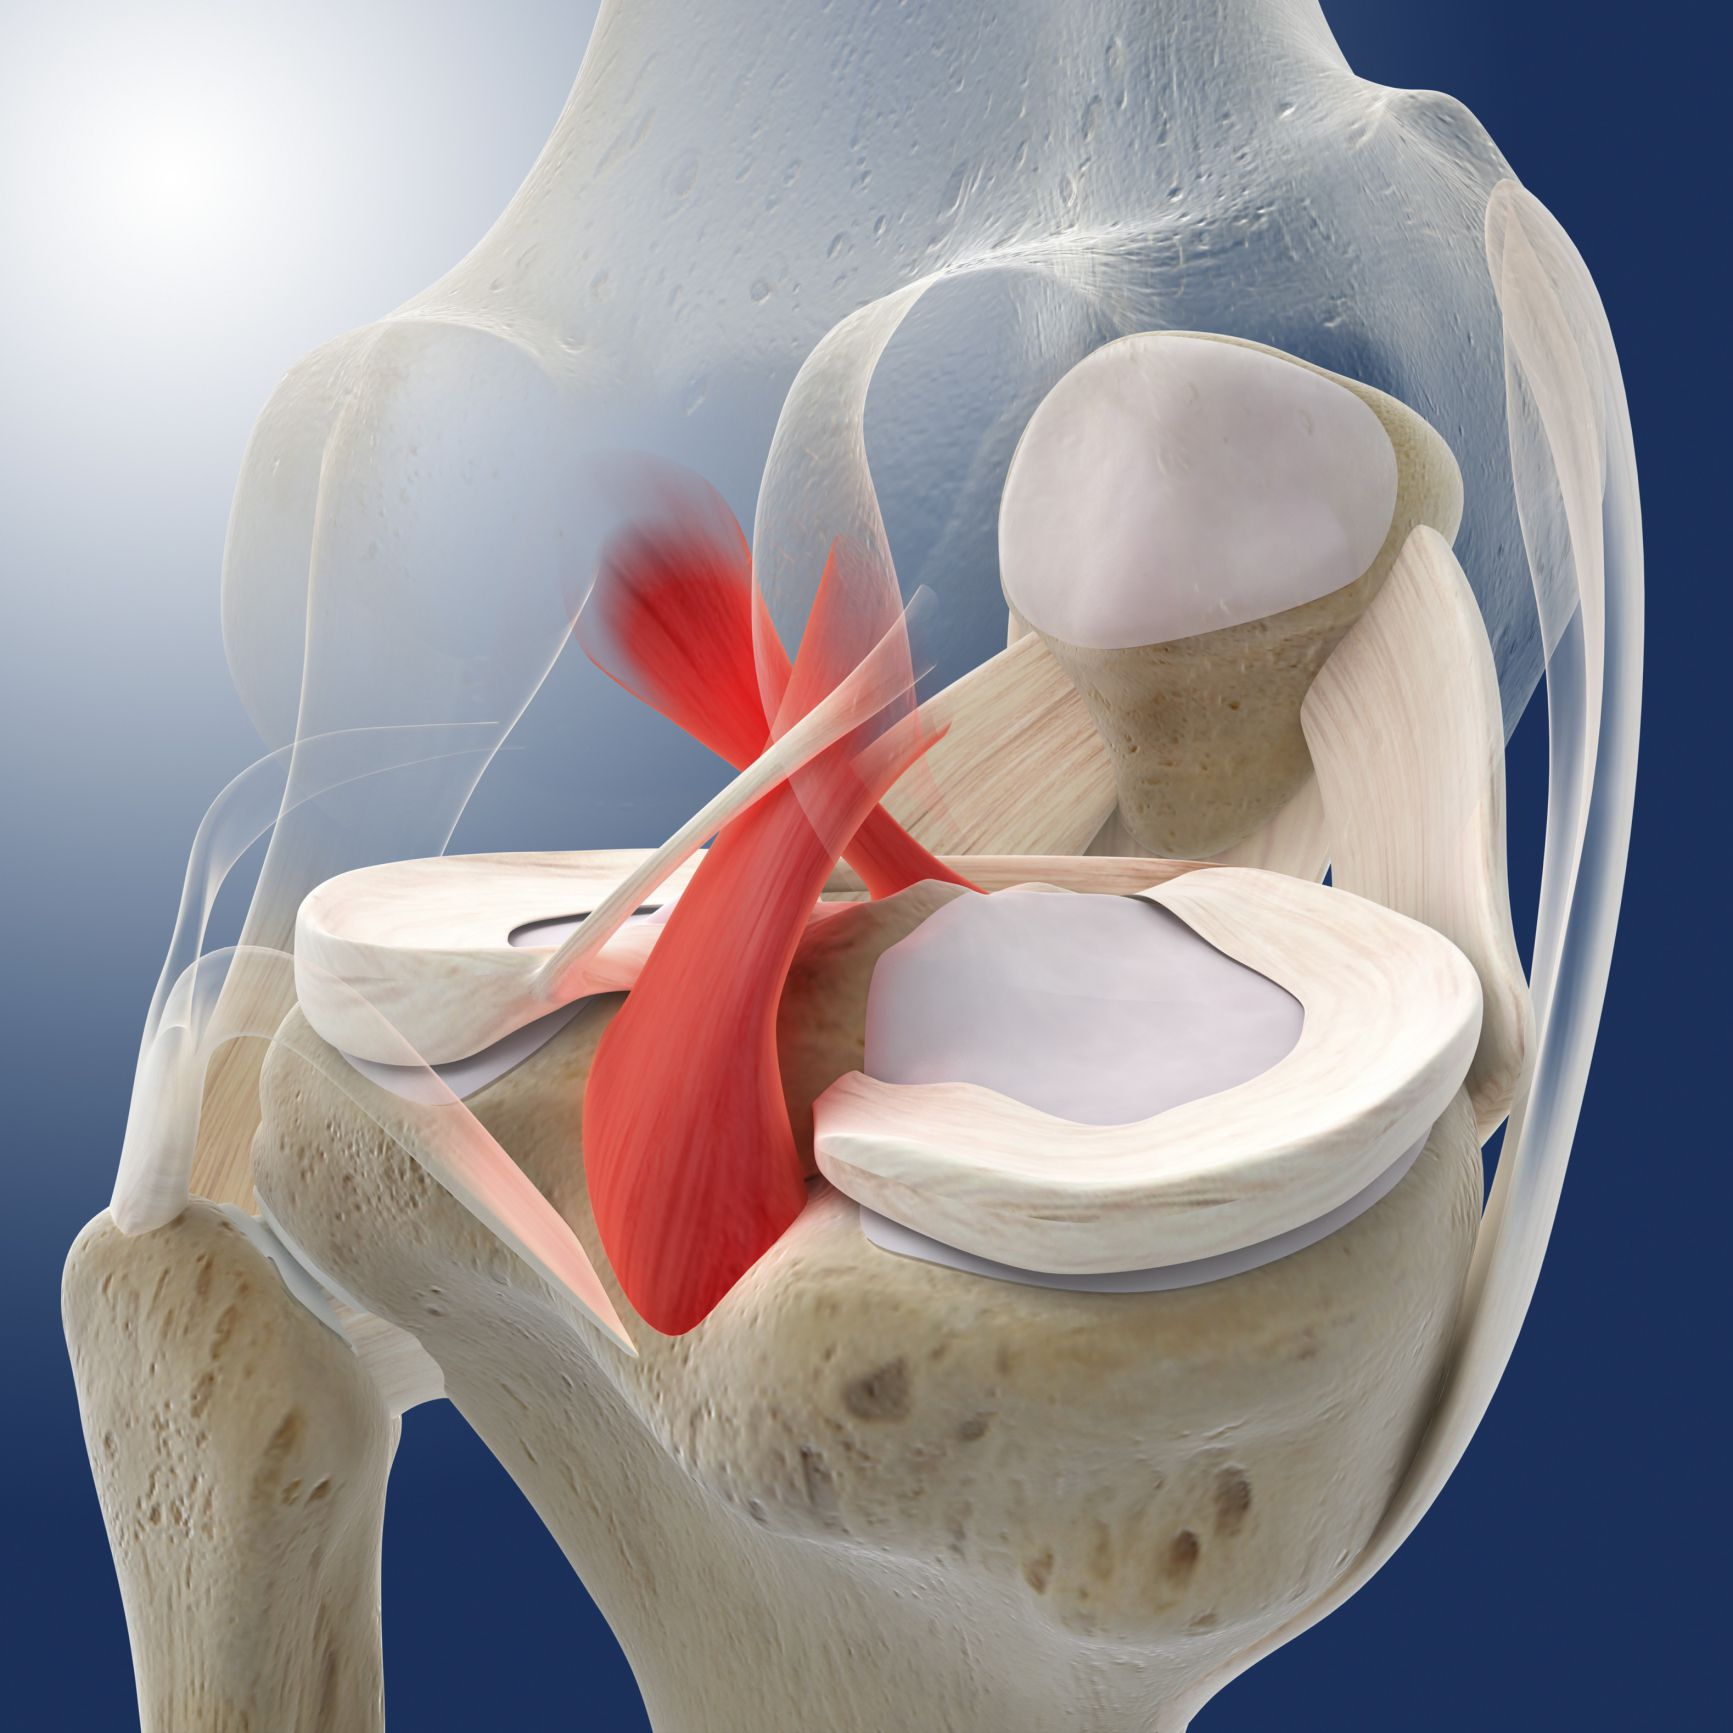 Posterior Cruciate Ligament Tears And Treatment